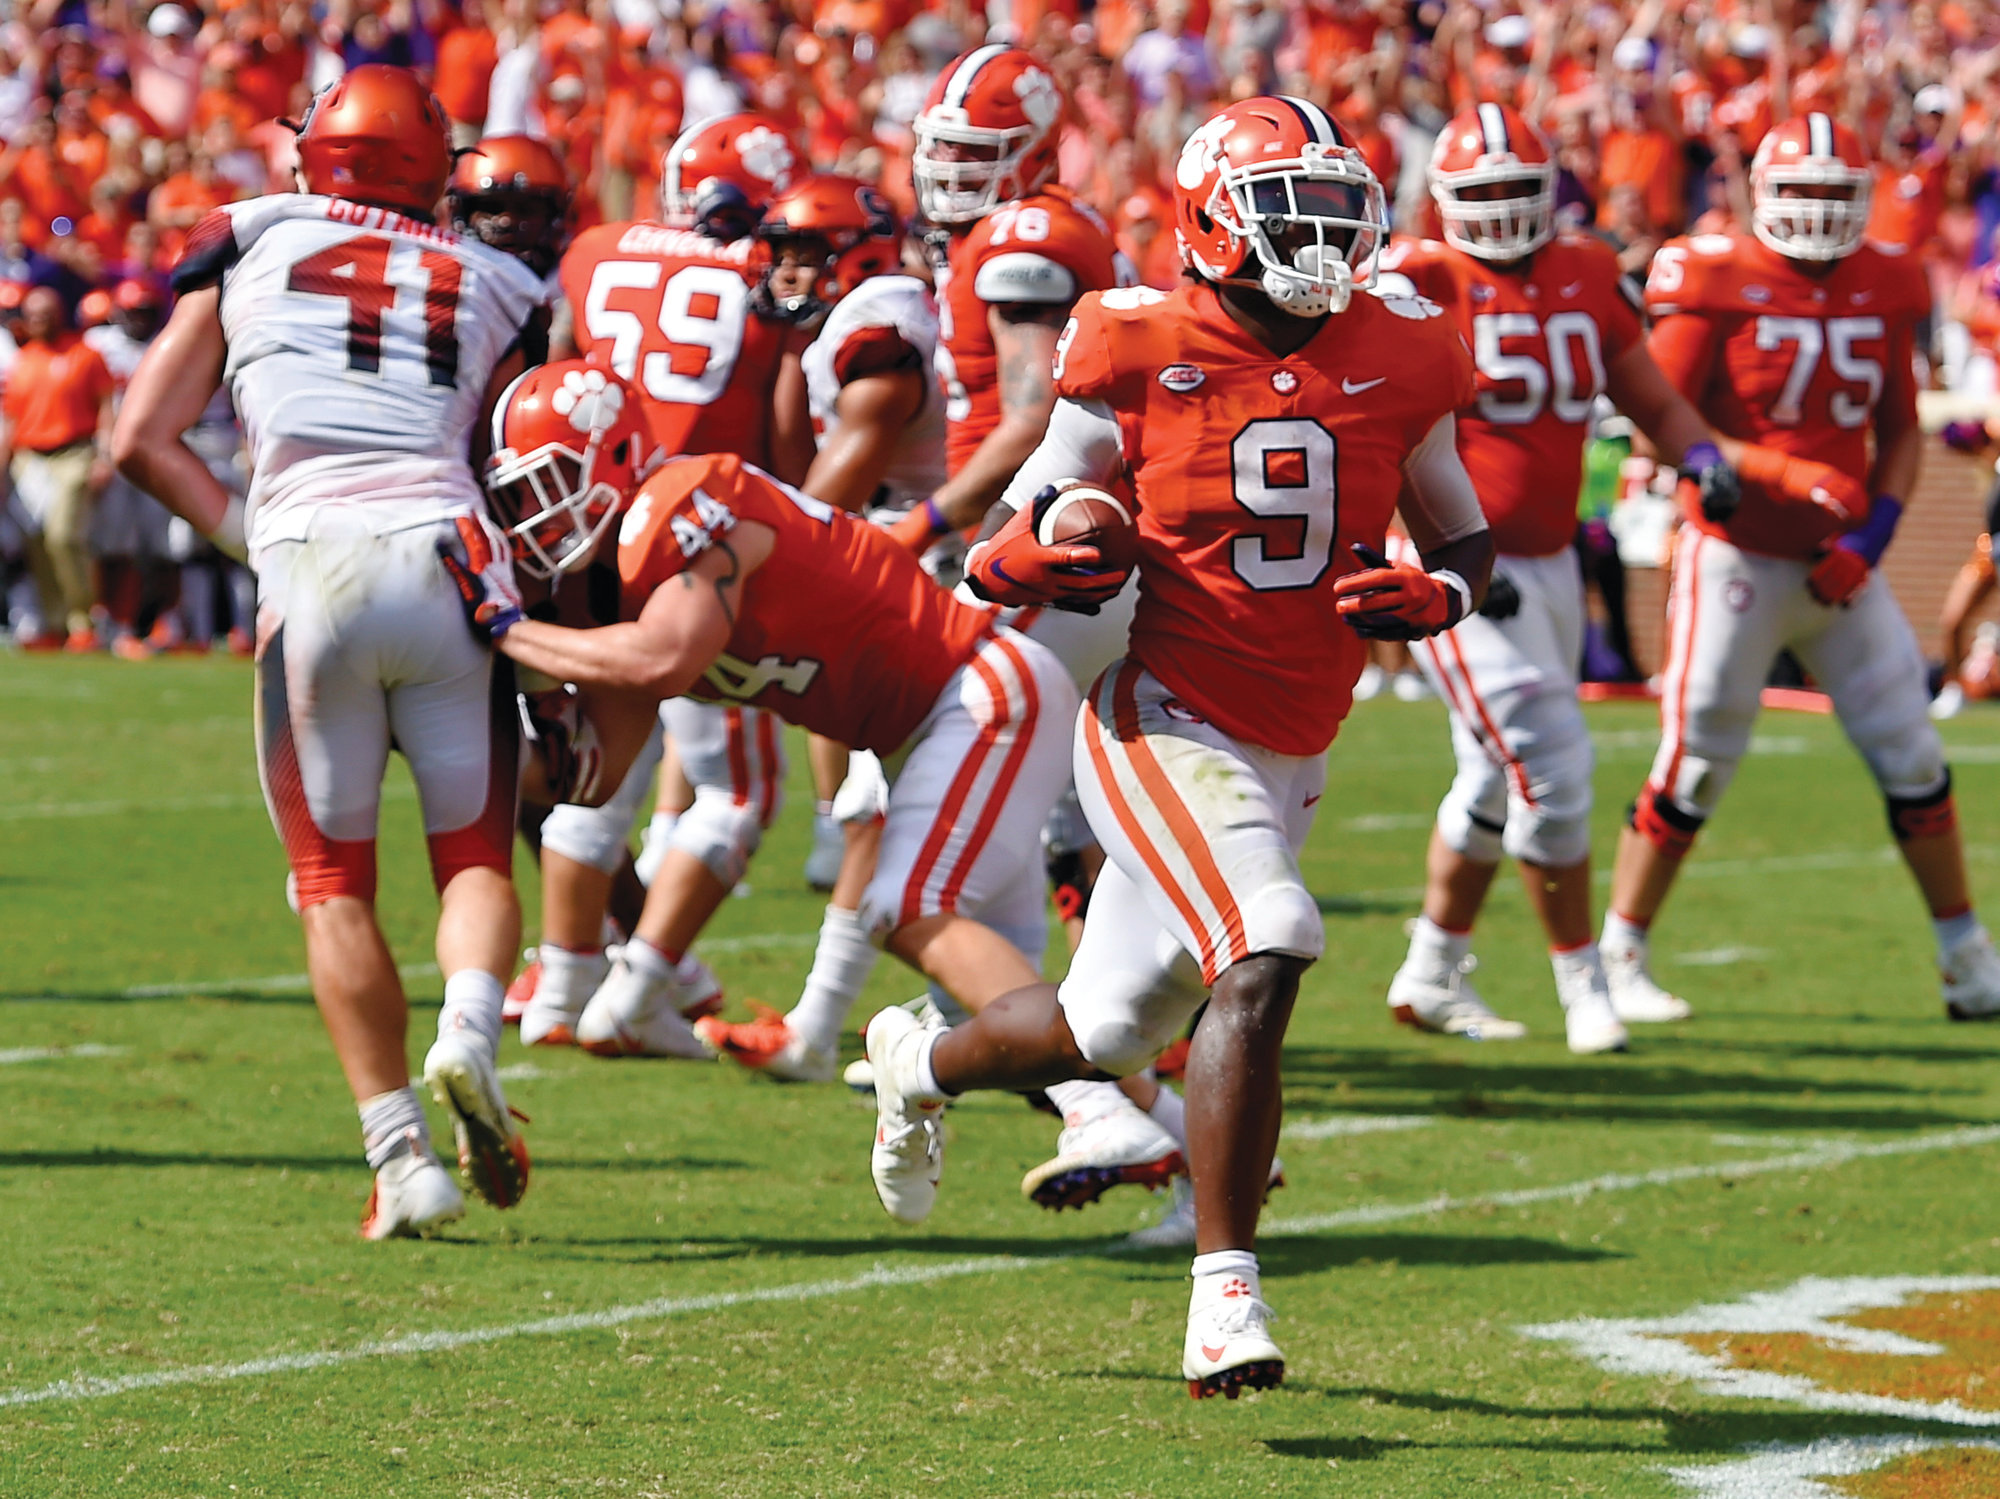 Clemson running back Travis Etienne (9) scores the winning touchdown in the Tigers' 27-23, come-from-behind victory over Syracuse on Saturday at Memorial Stadium in Clemson.